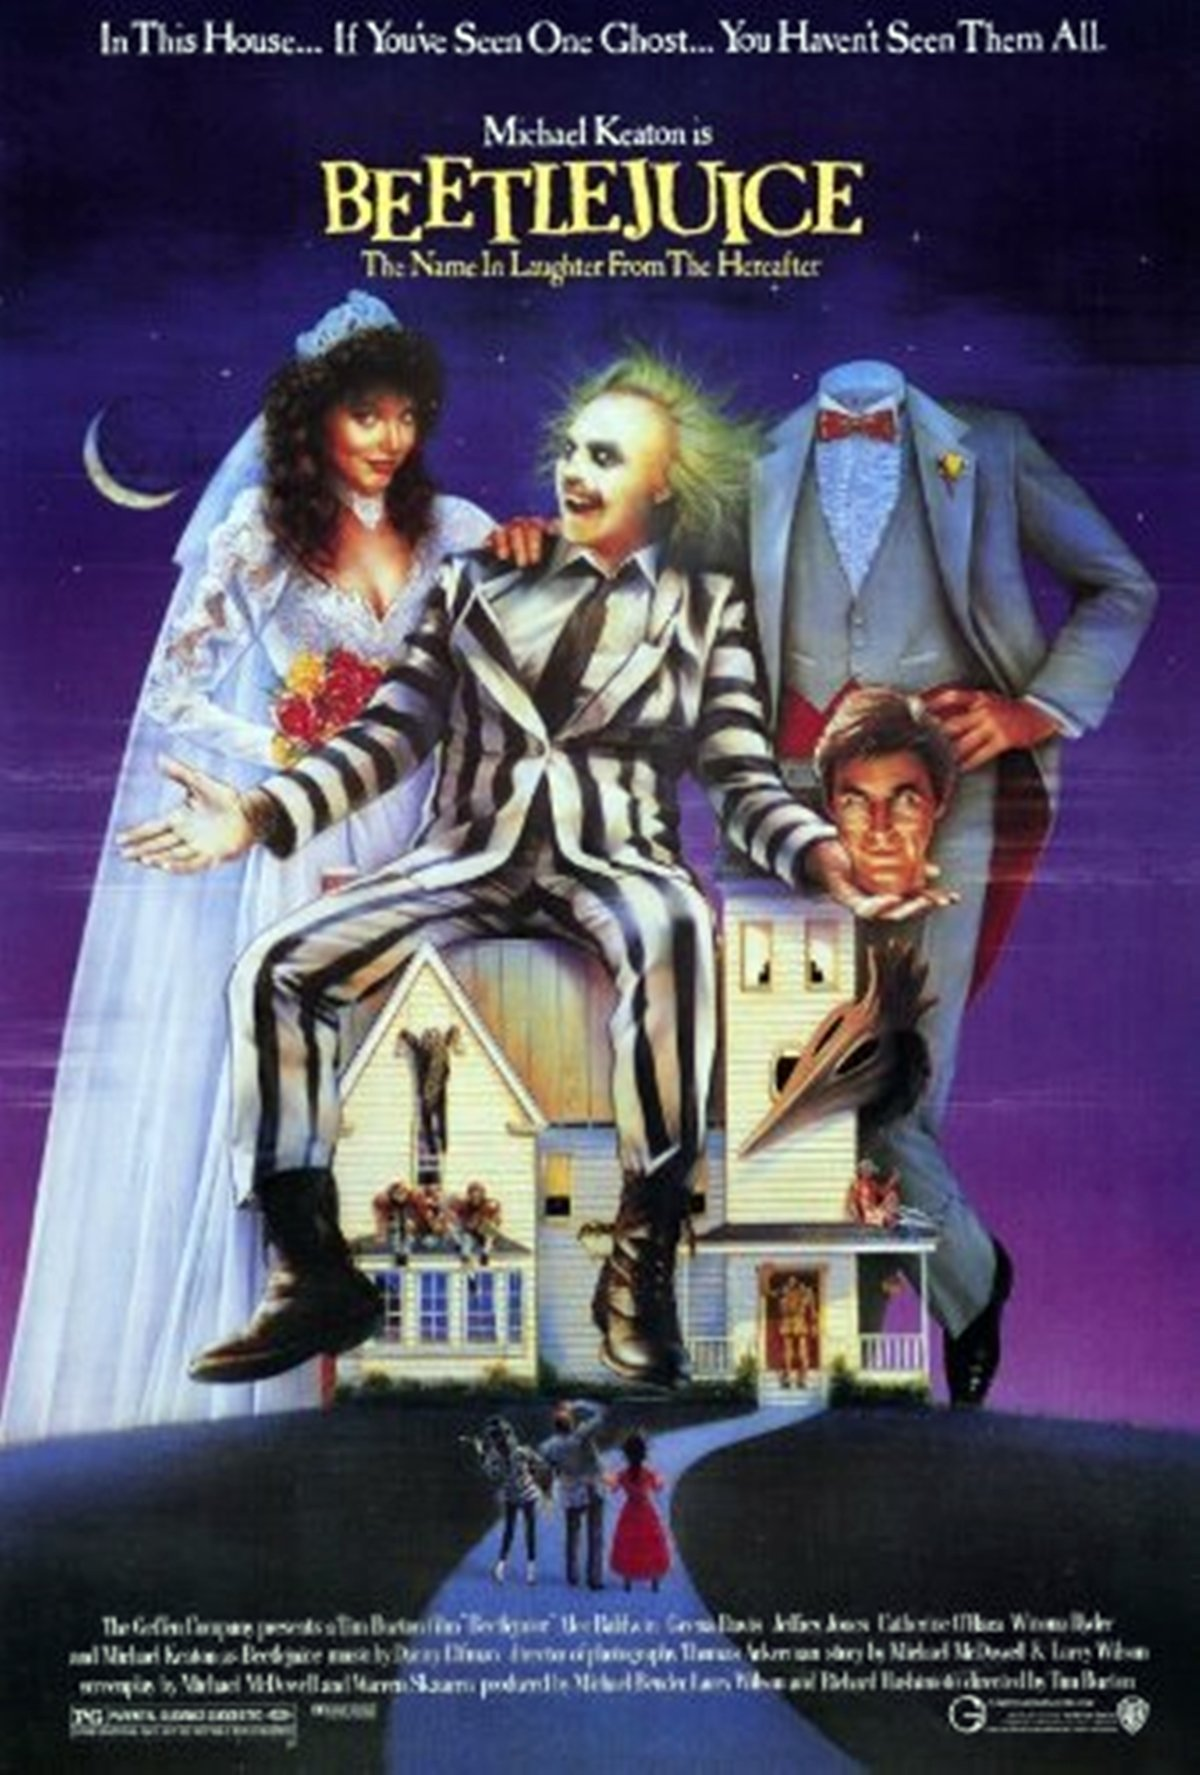 1 1 30 Movies You Won't Believe Are Already 30 Years Old!